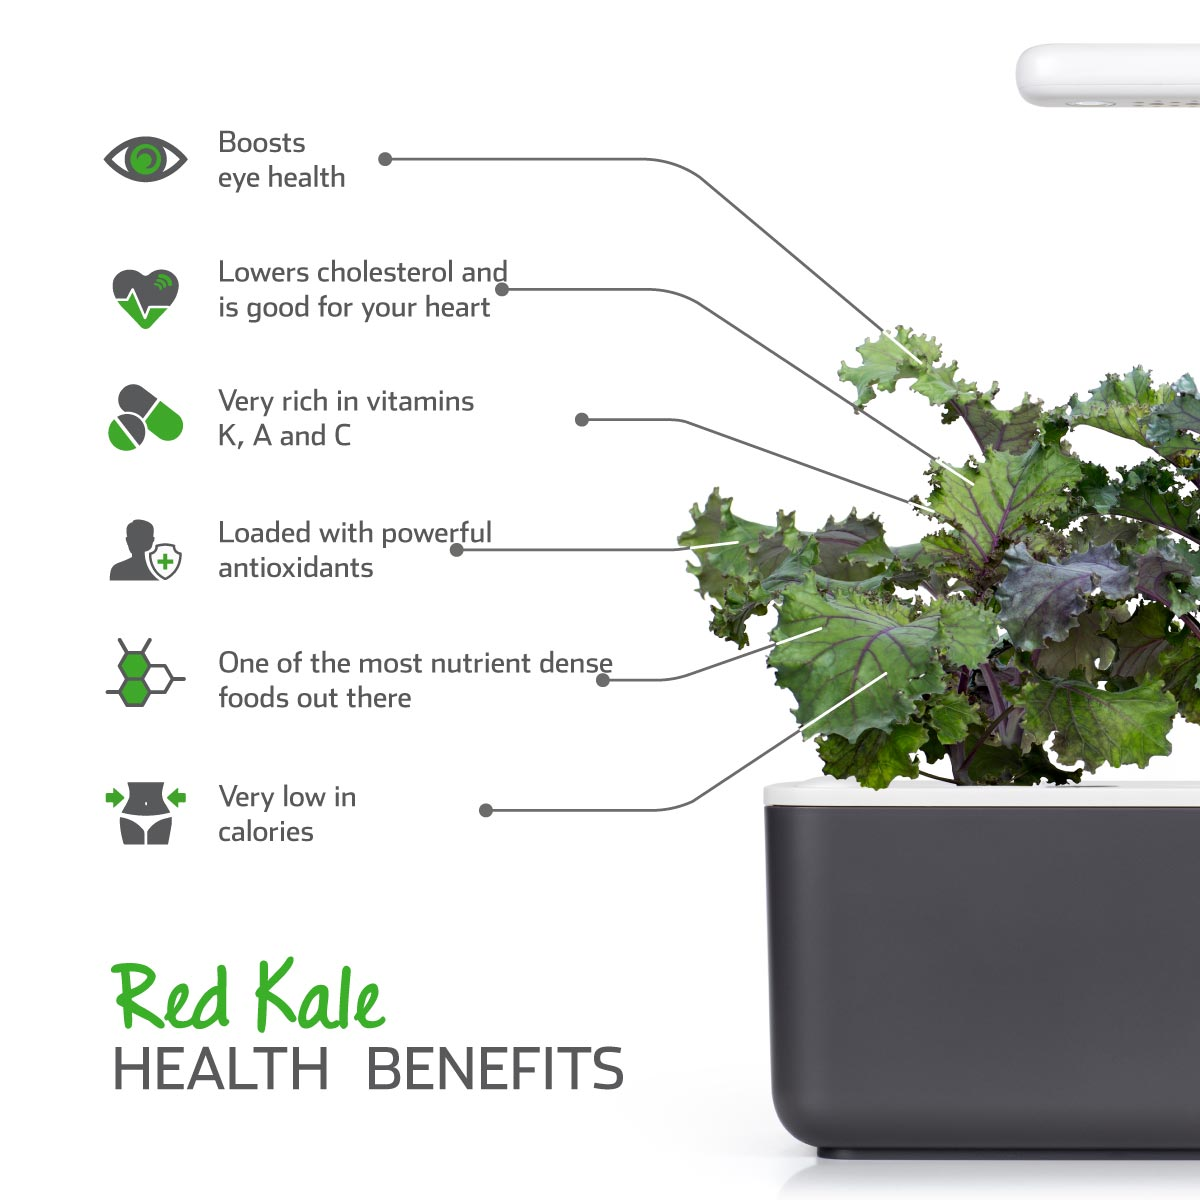 Red Kale (Brassica oleracea) health benefits - Click & Grow indoor garden